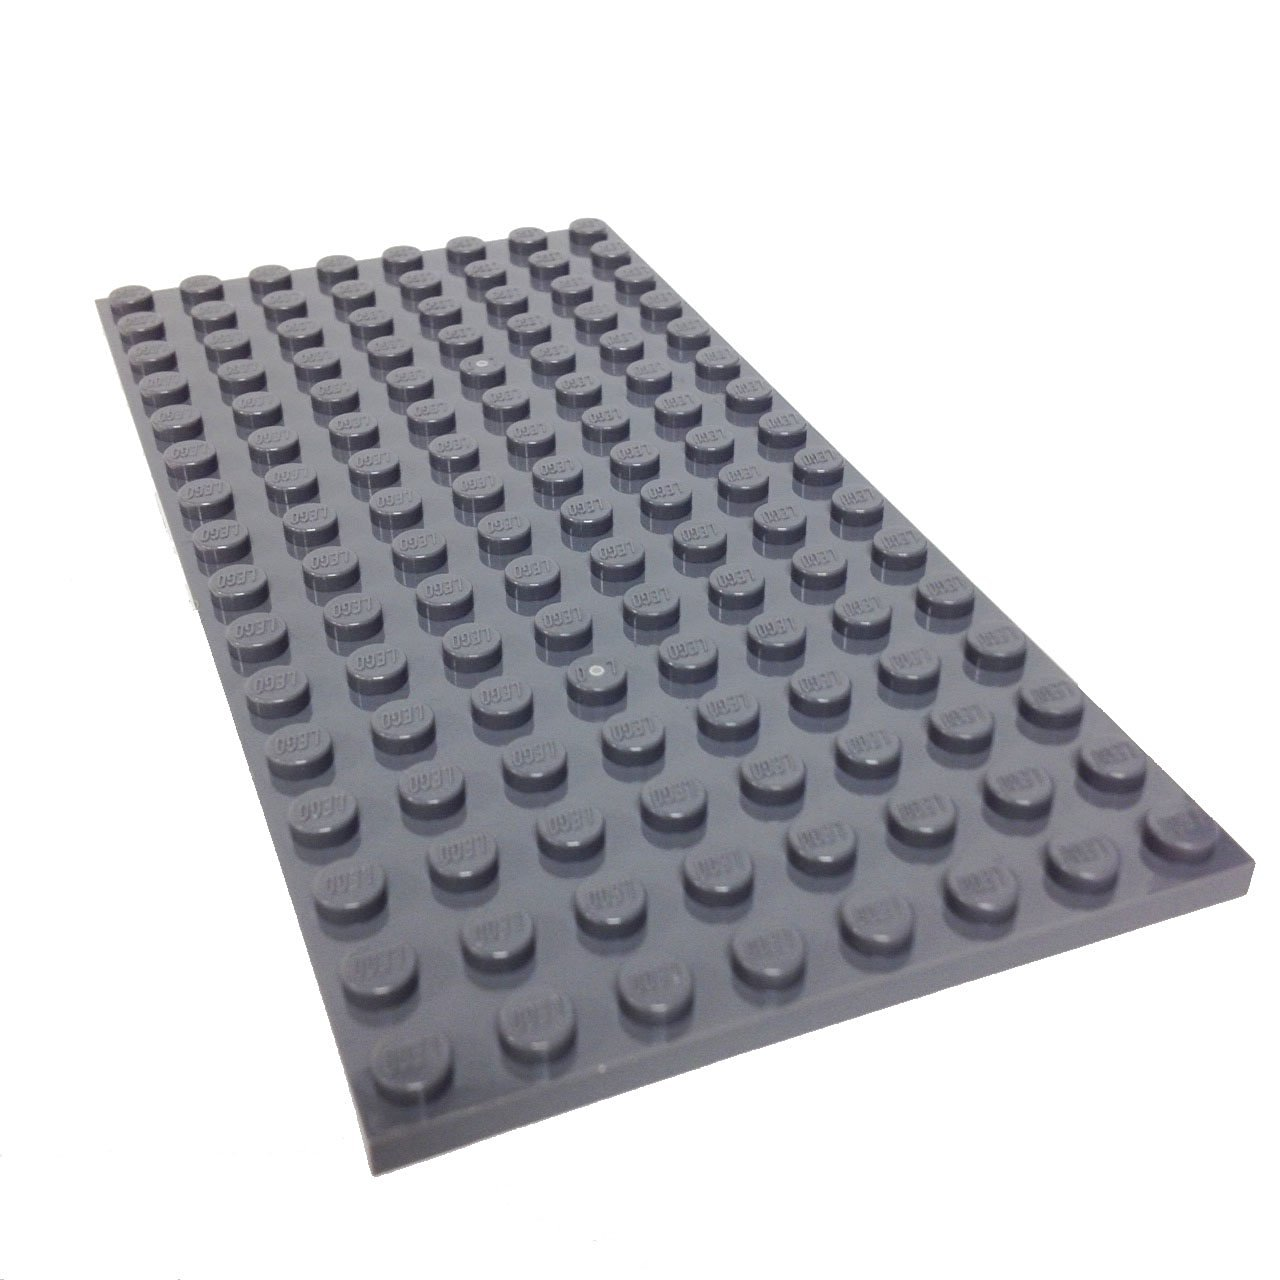 Lego Parts: Plate 8 x 16 (Dark Bluish Gray)